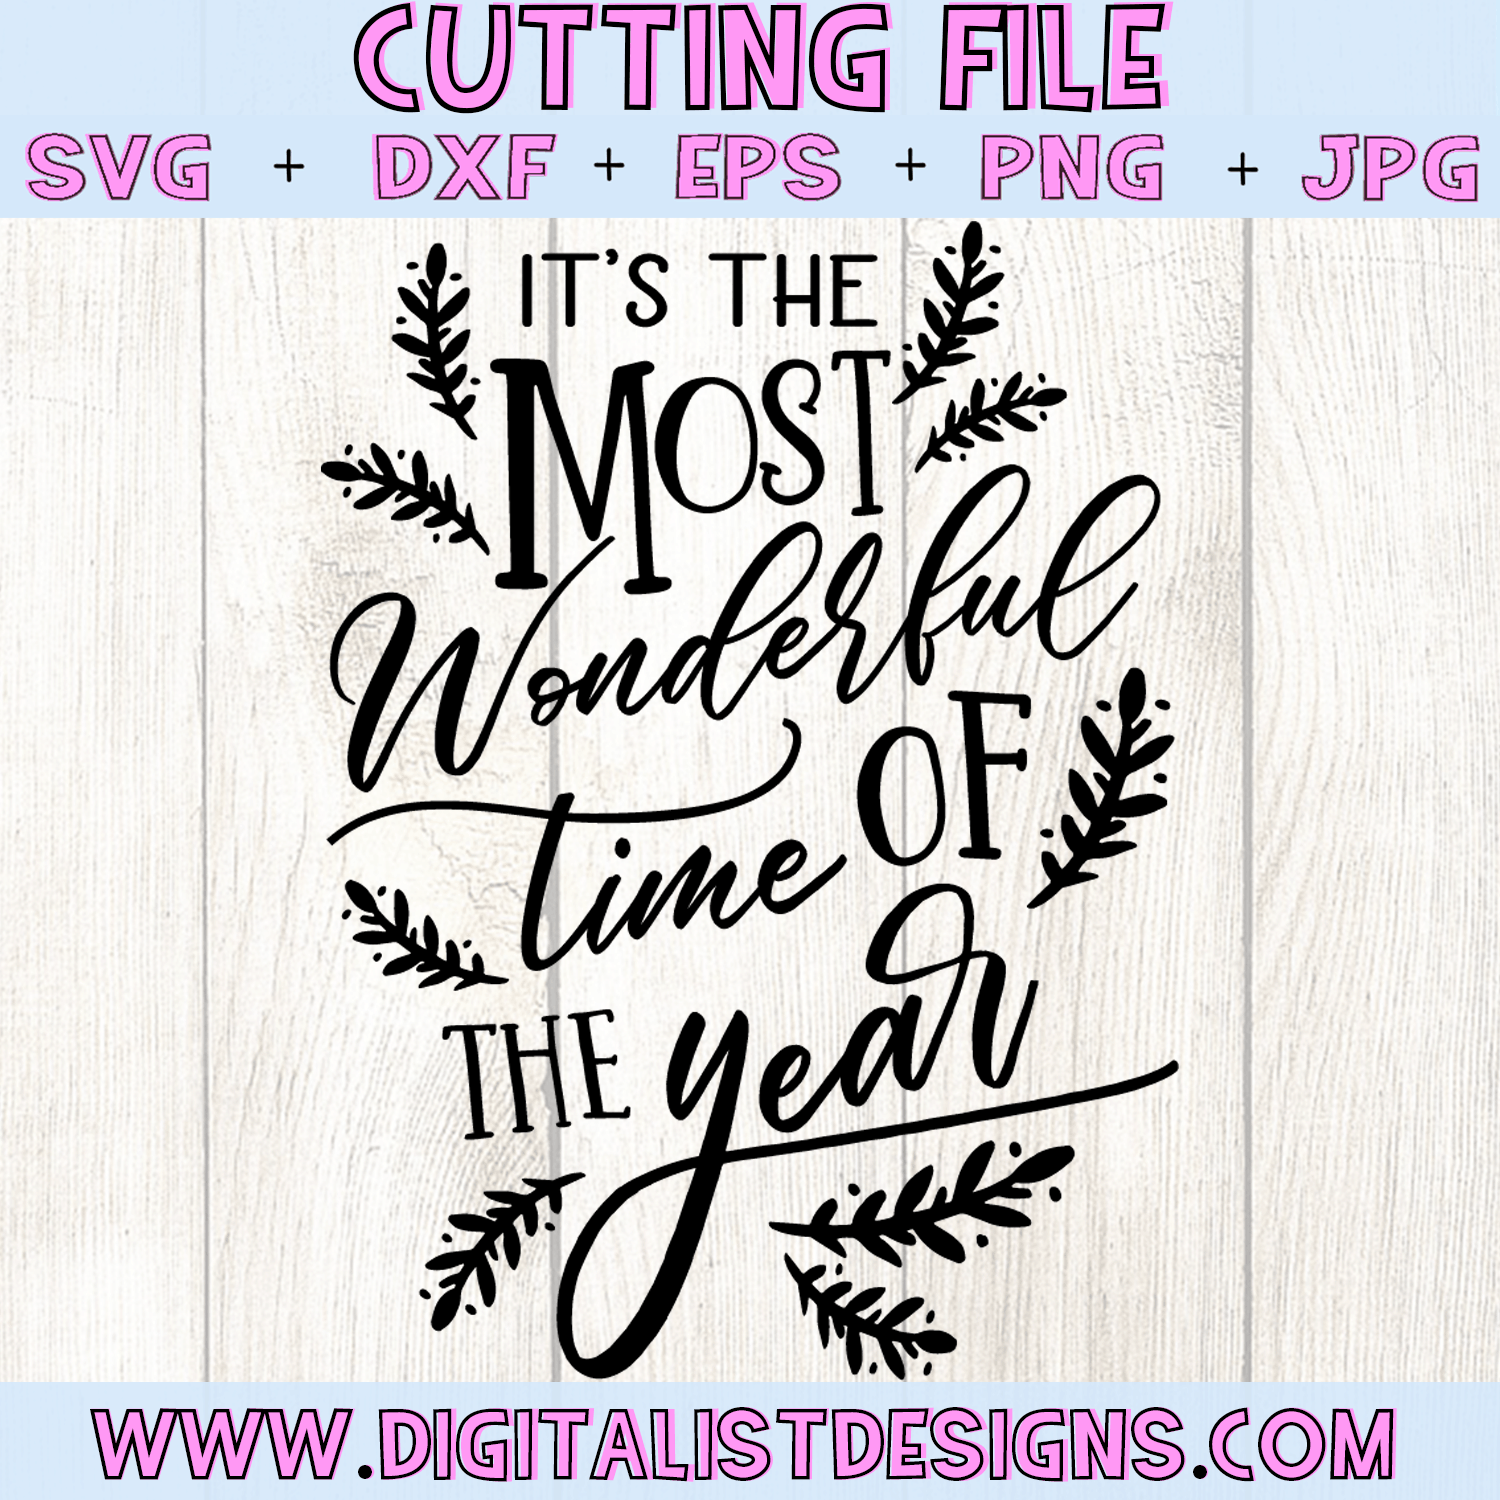 It S The Most Wonderful Time Of The Year Svg Digitalistdesigns